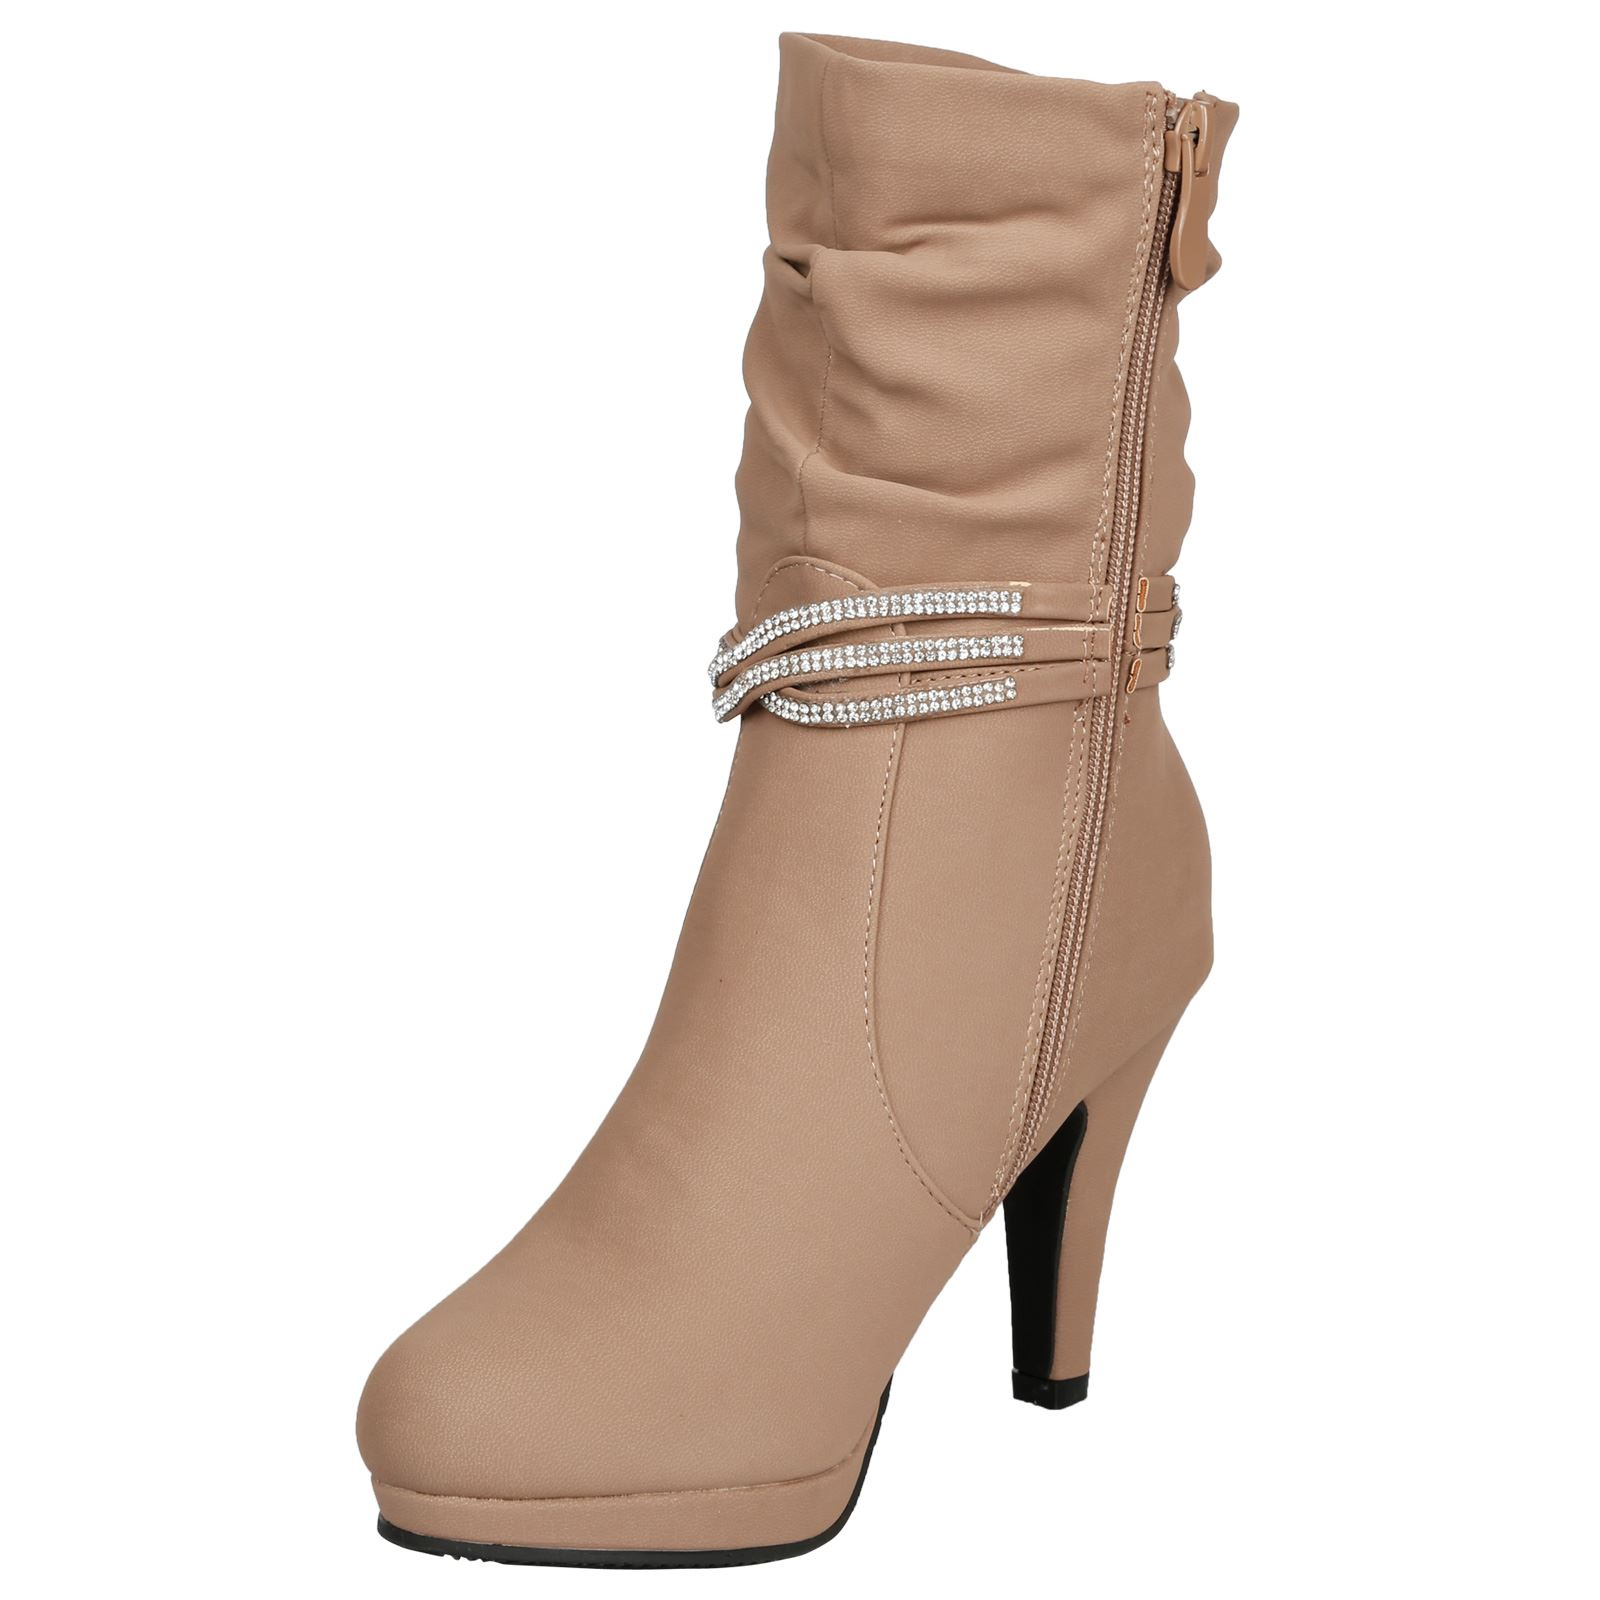 Estrella-Womens-Slim-High-Heel-Diamante-Strap-Slouch-Ankle-Boots-Casual-Style thumbnail 8